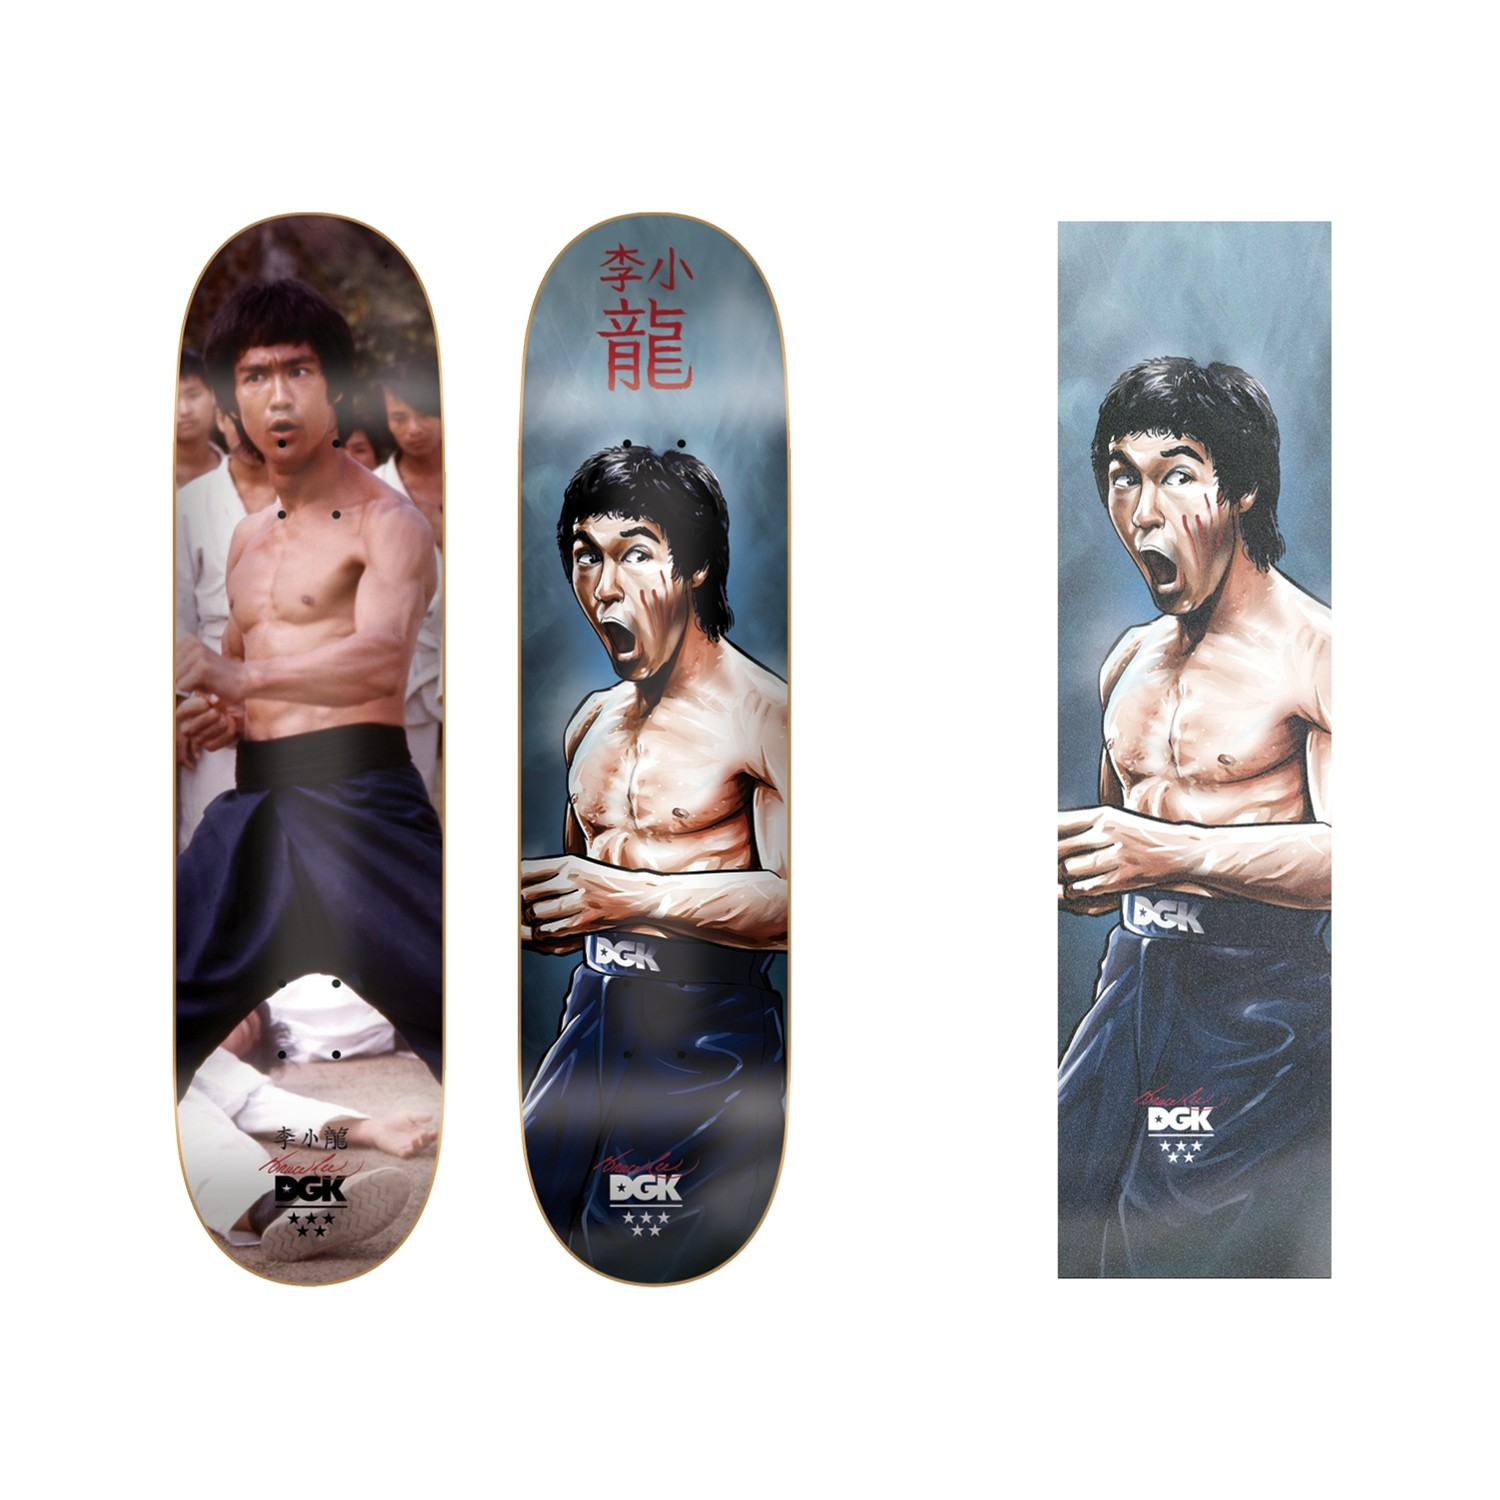 Bruce Lee Whos Next Deck